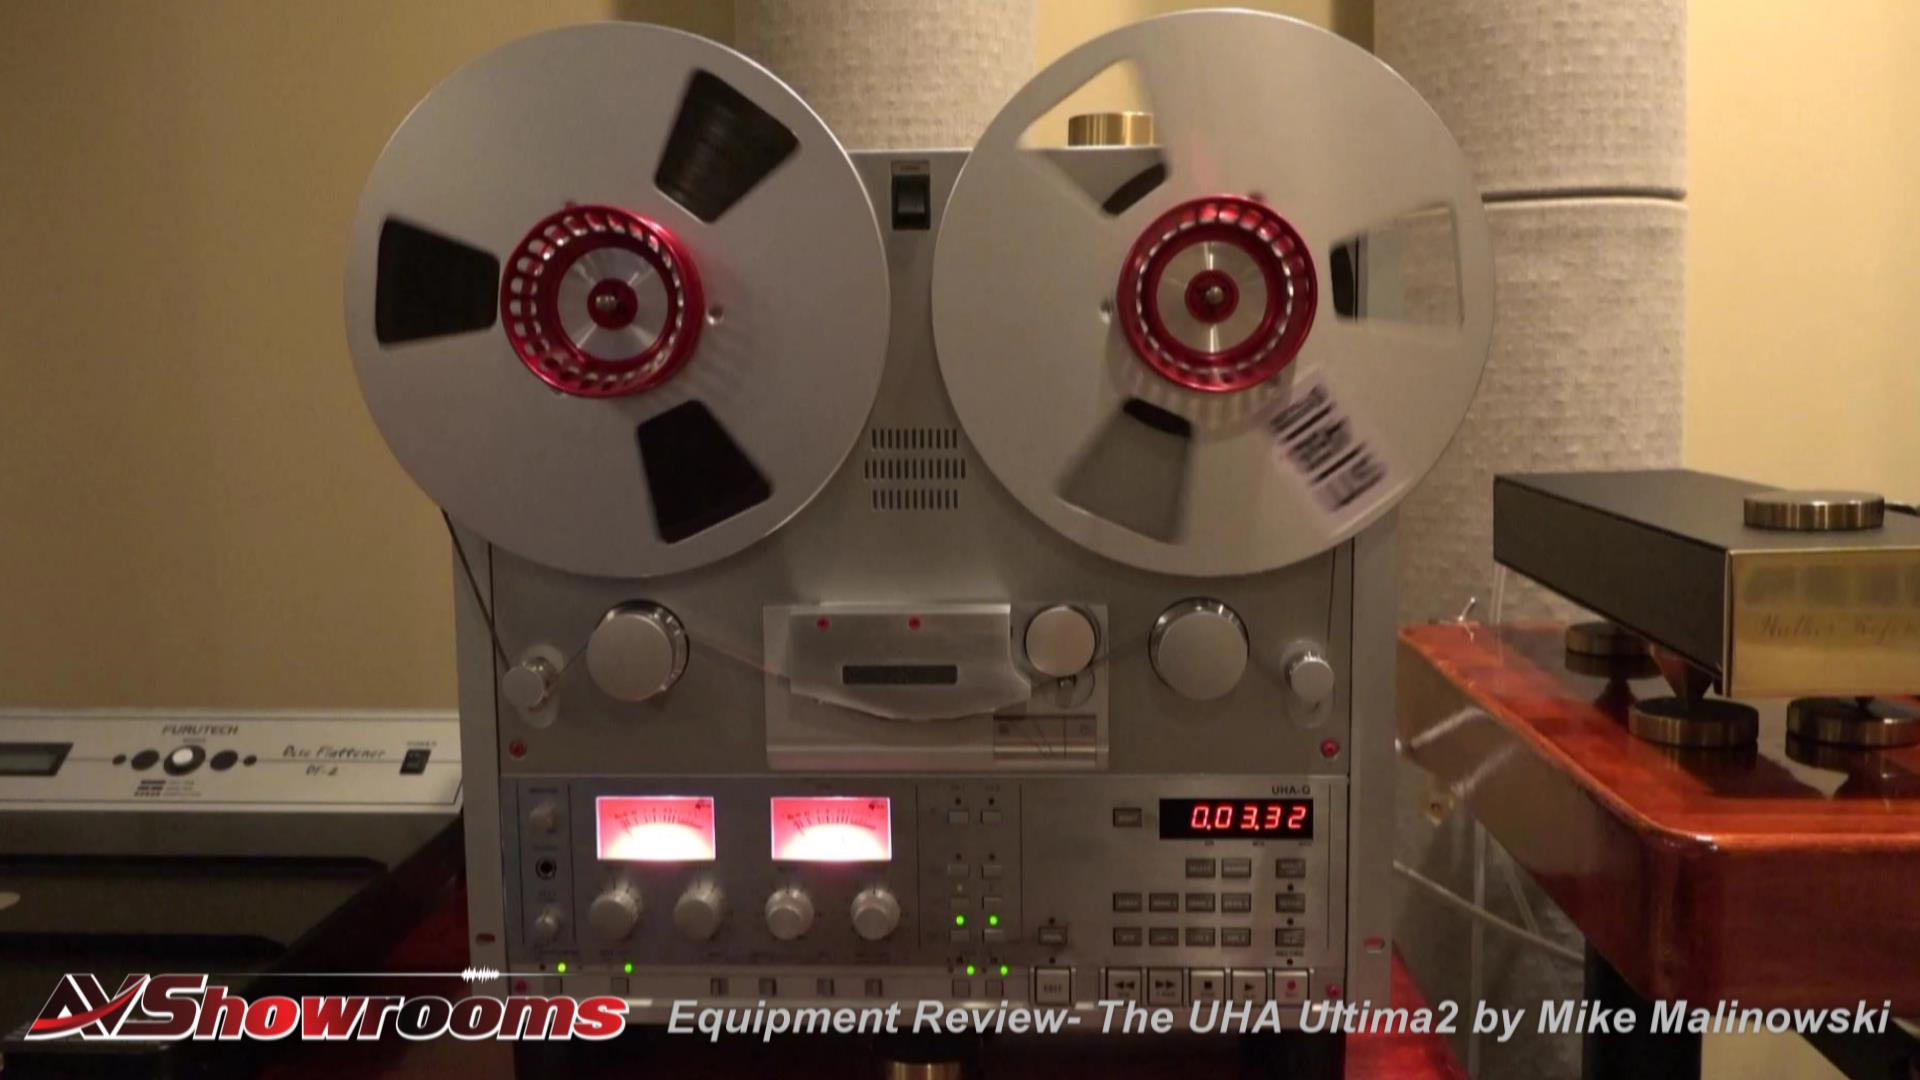 United Home Audio UHA Reel to Reel Deck